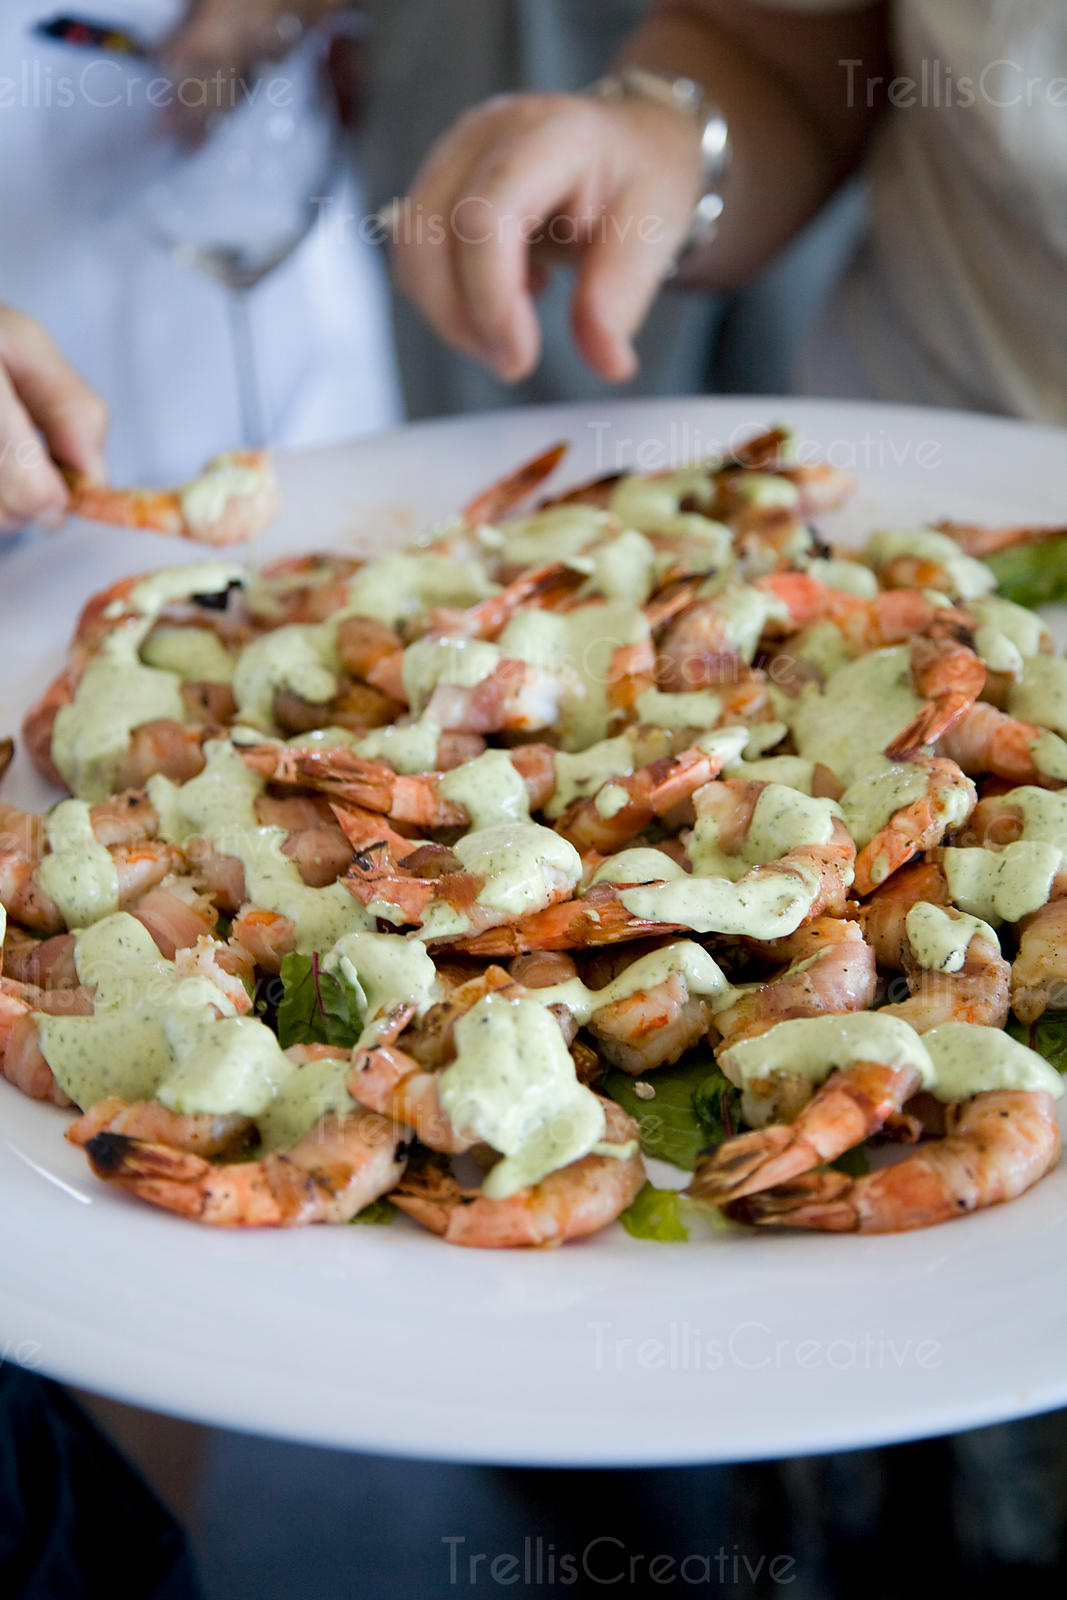 Guests enjoy eating seasoned shrimp from a platter